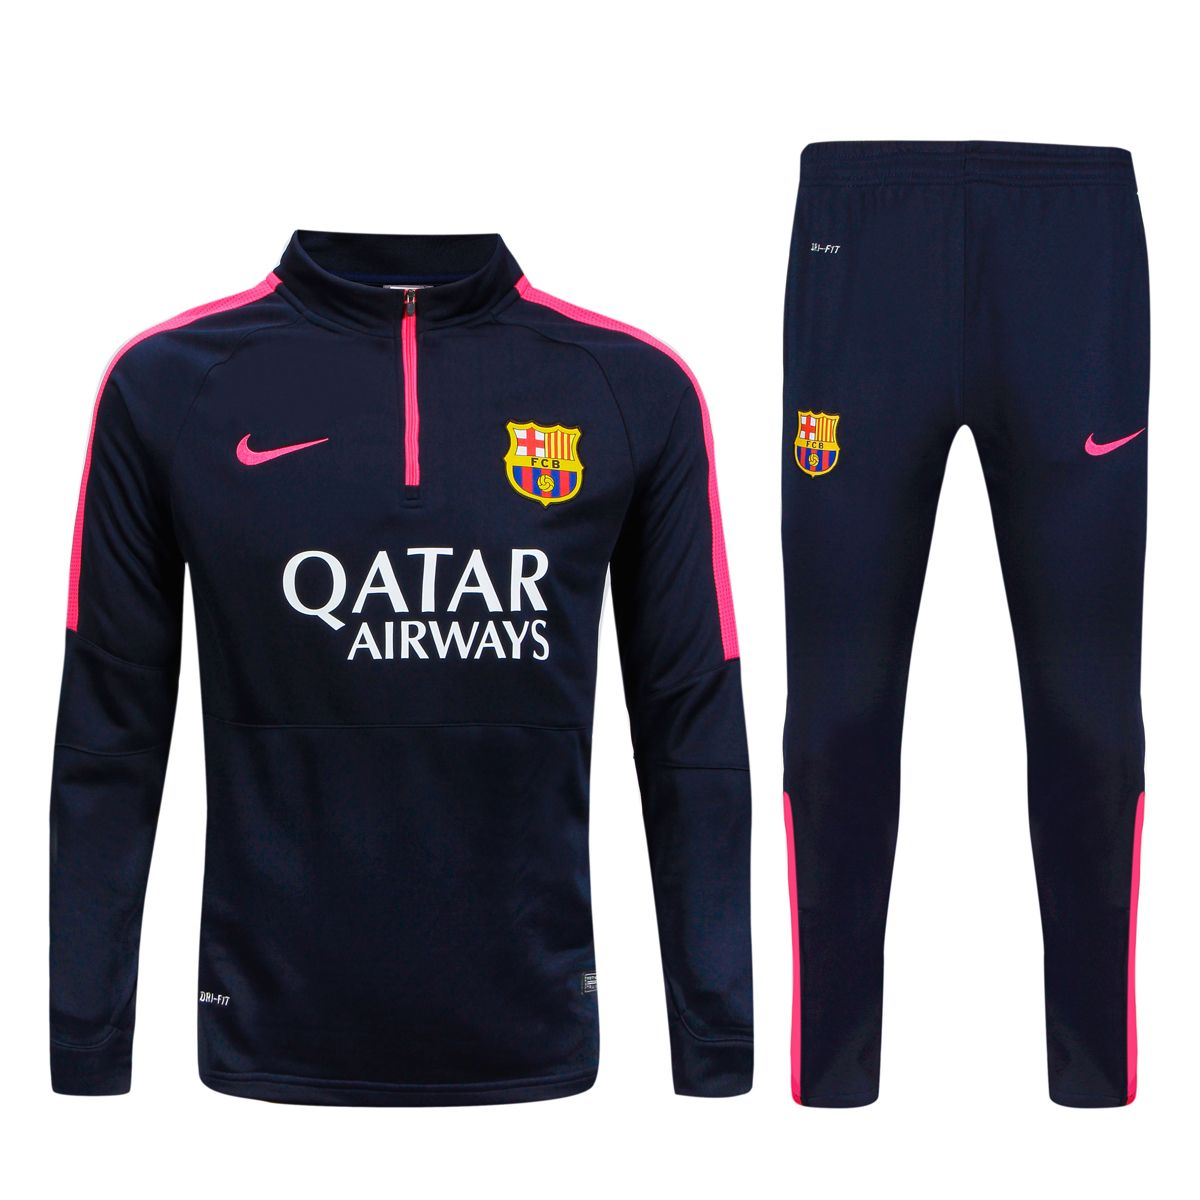 nouveau survet barca 2016 foot 2016 pinterest tenue de sport fc barcelone et tenue. Black Bedroom Furniture Sets. Home Design Ideas